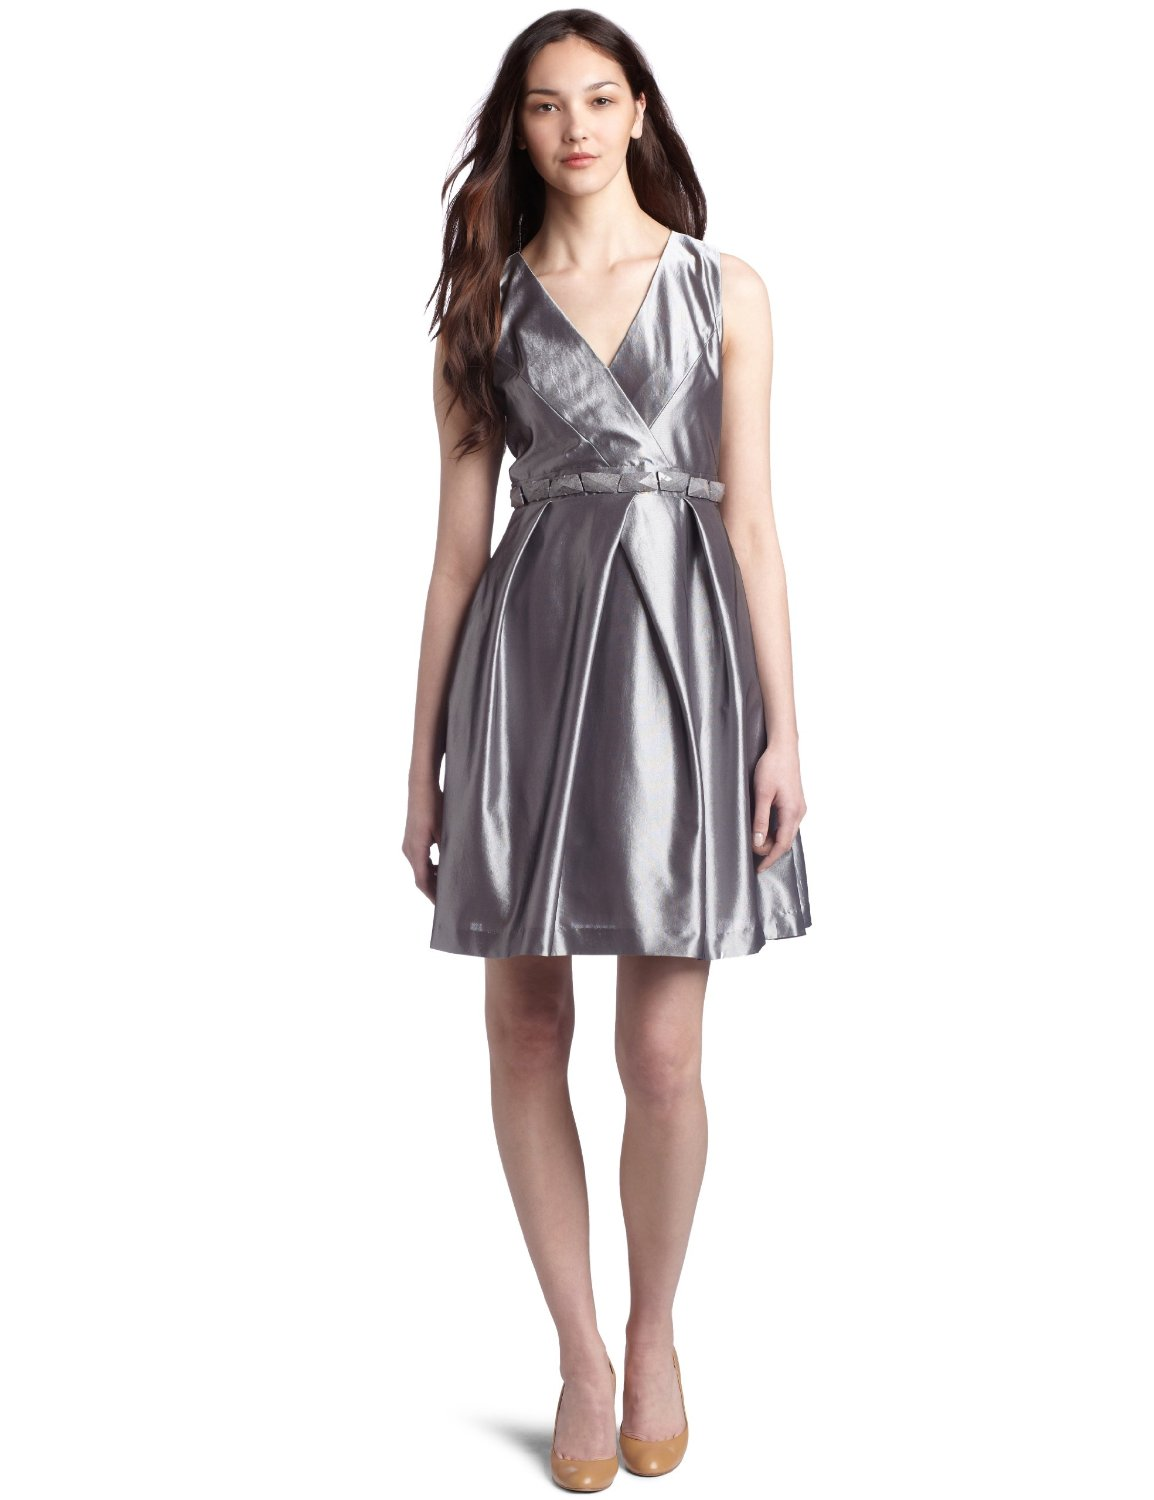 8ba17ef22a2 Want to channel Blair Waldorf at prom  This metallic prom dress ...